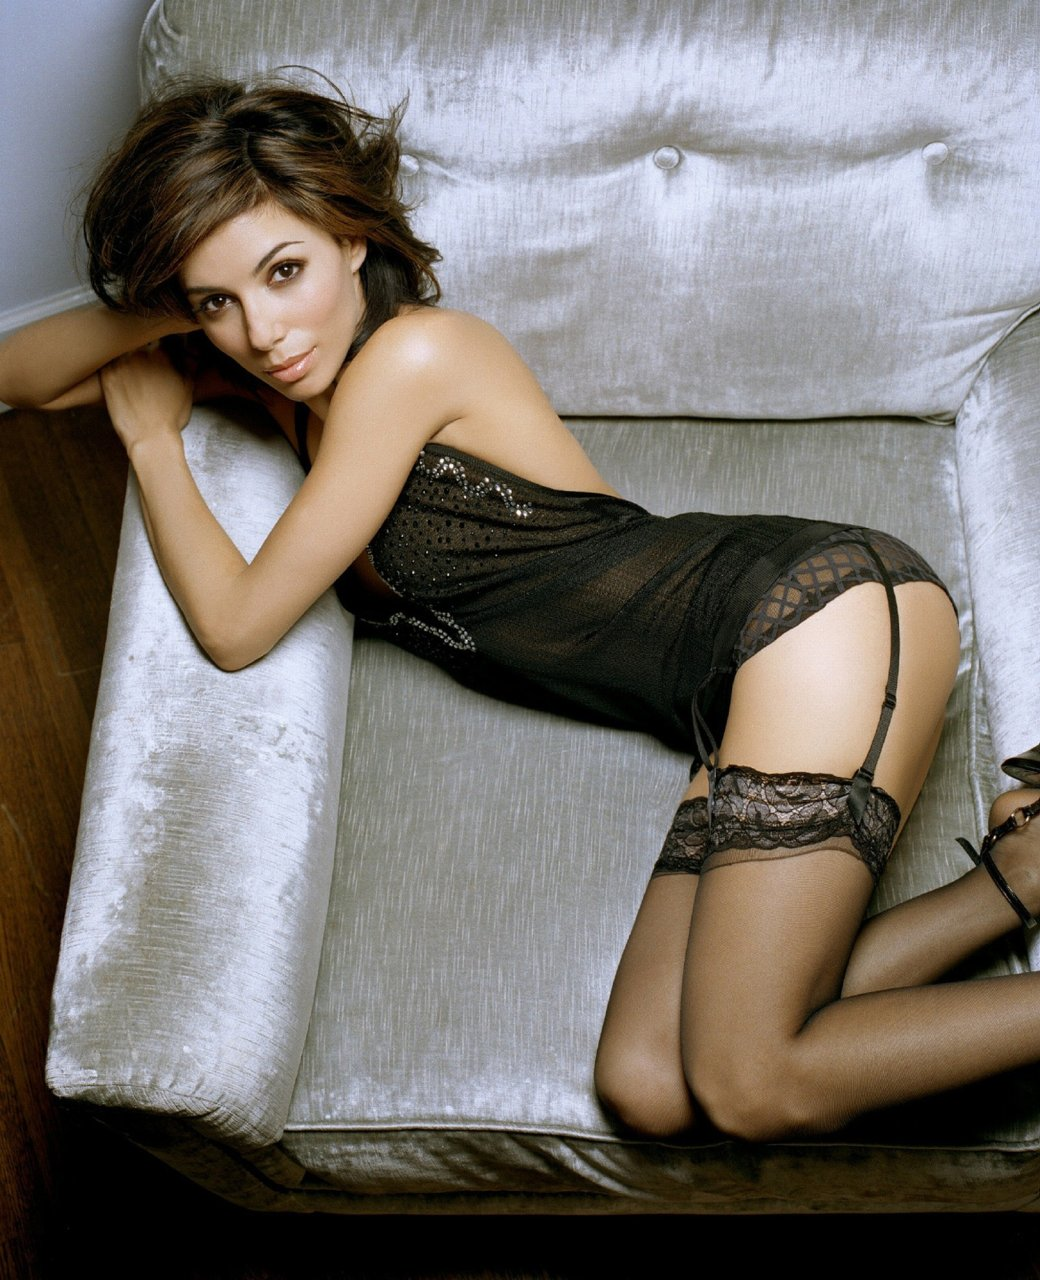 Hottest pictures of eva mendes